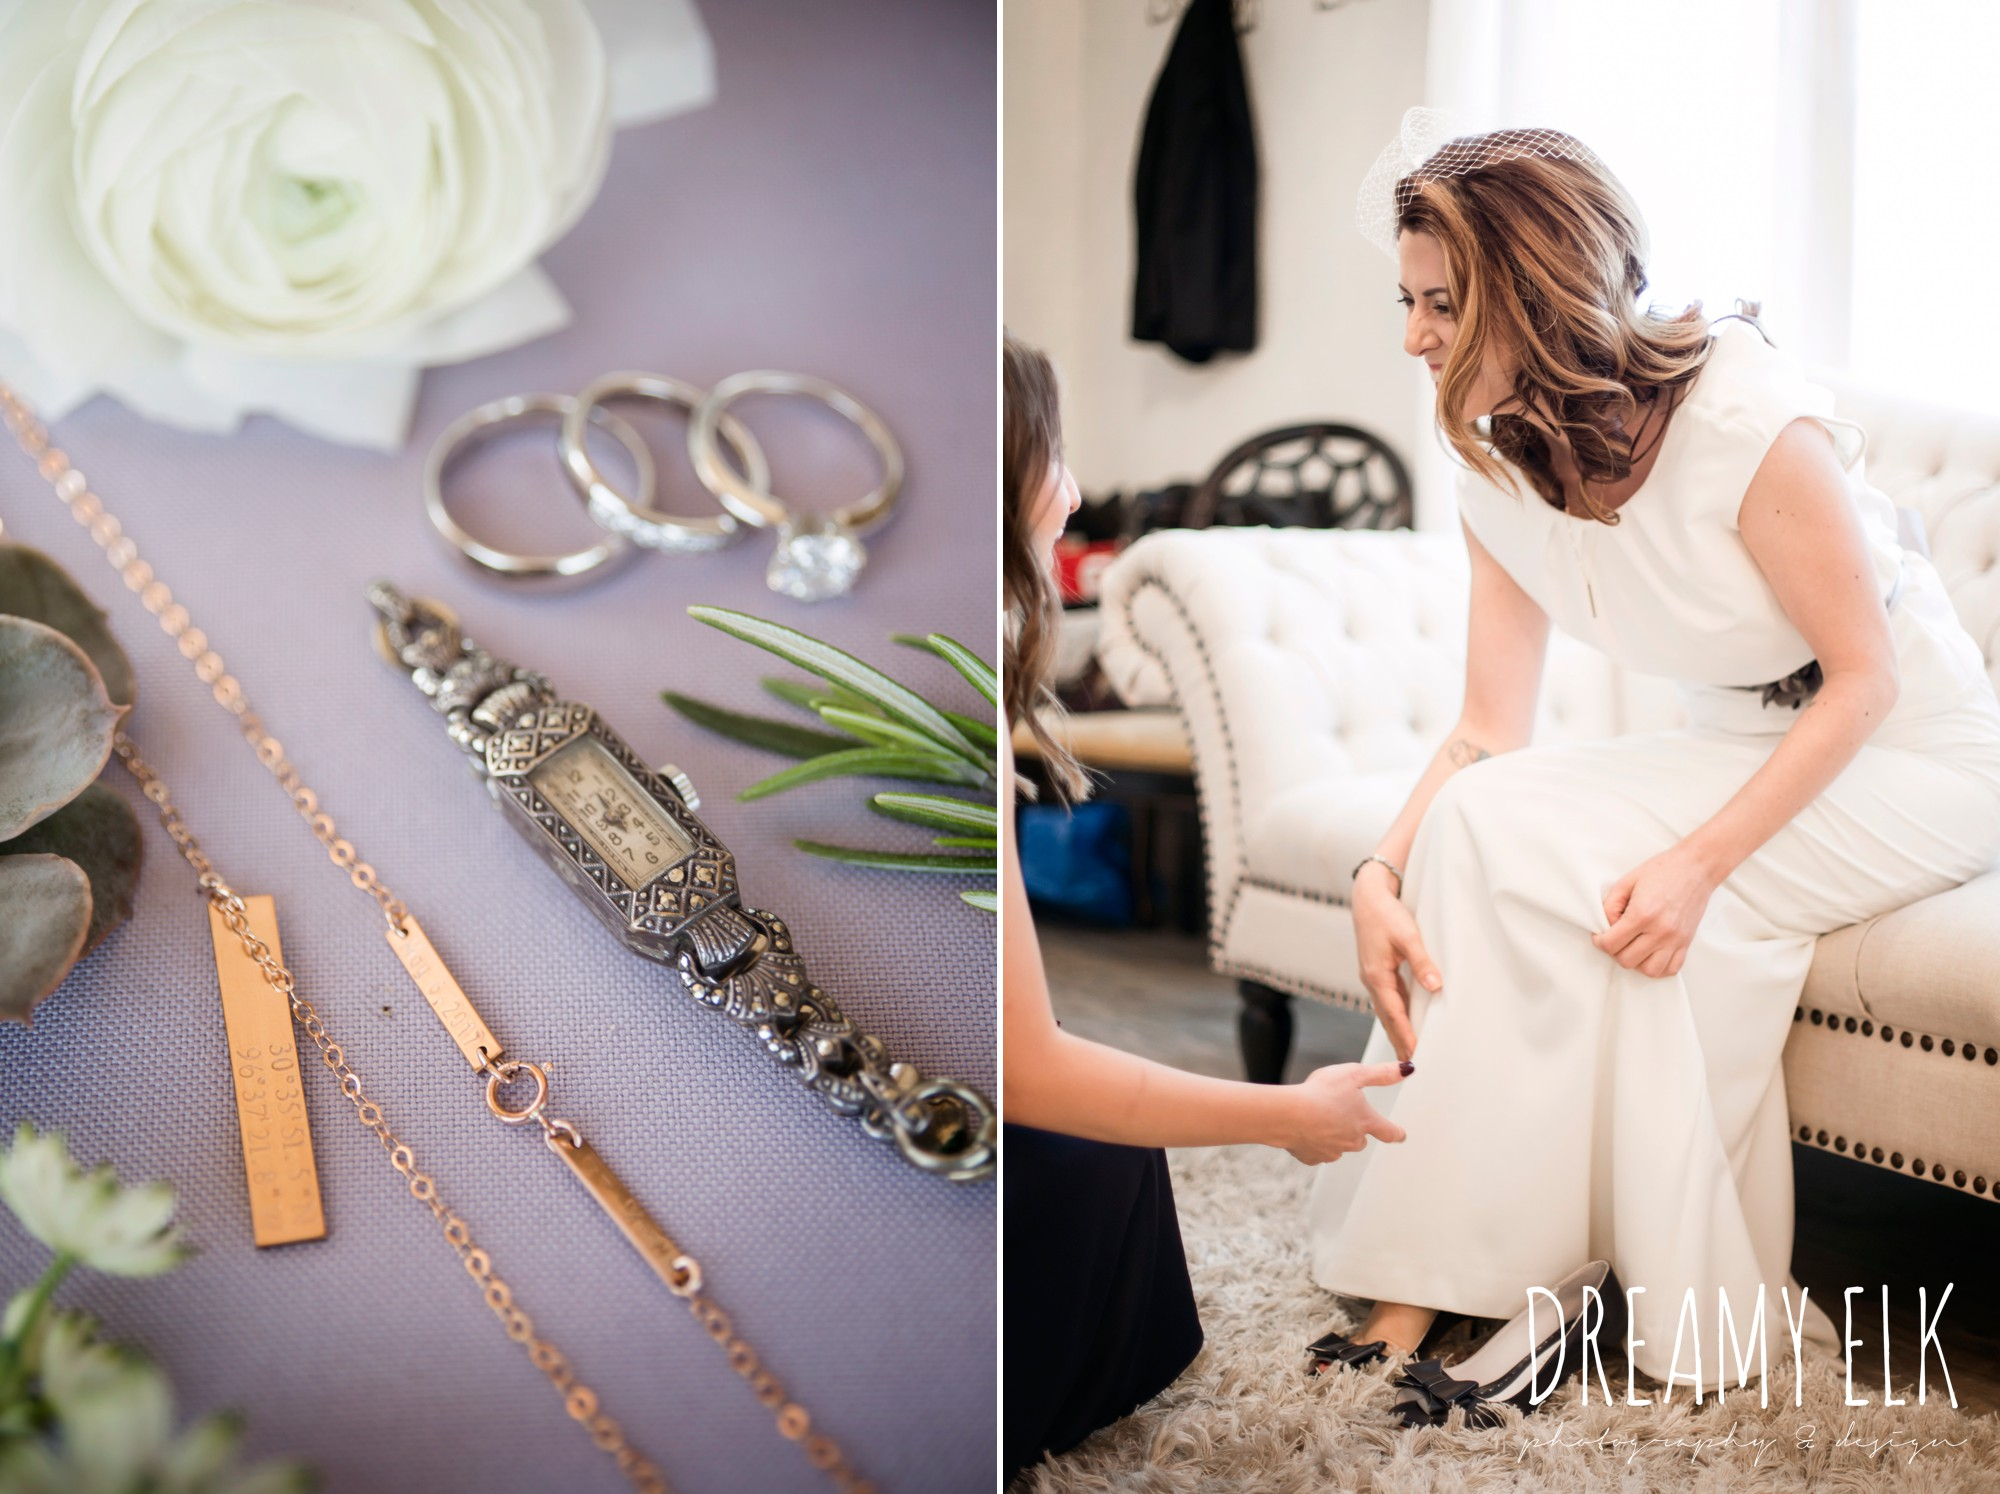 bride getting dressed, wedding jewelry, something old, something borrowed, le lafrendi handmade shoes, handmade wedding dress, two piece wedding dress, gray sash, outdoor april spring wedding photo, double creek crossing, college station, texas, austin wedding photographer {dreamy elk photography and design}